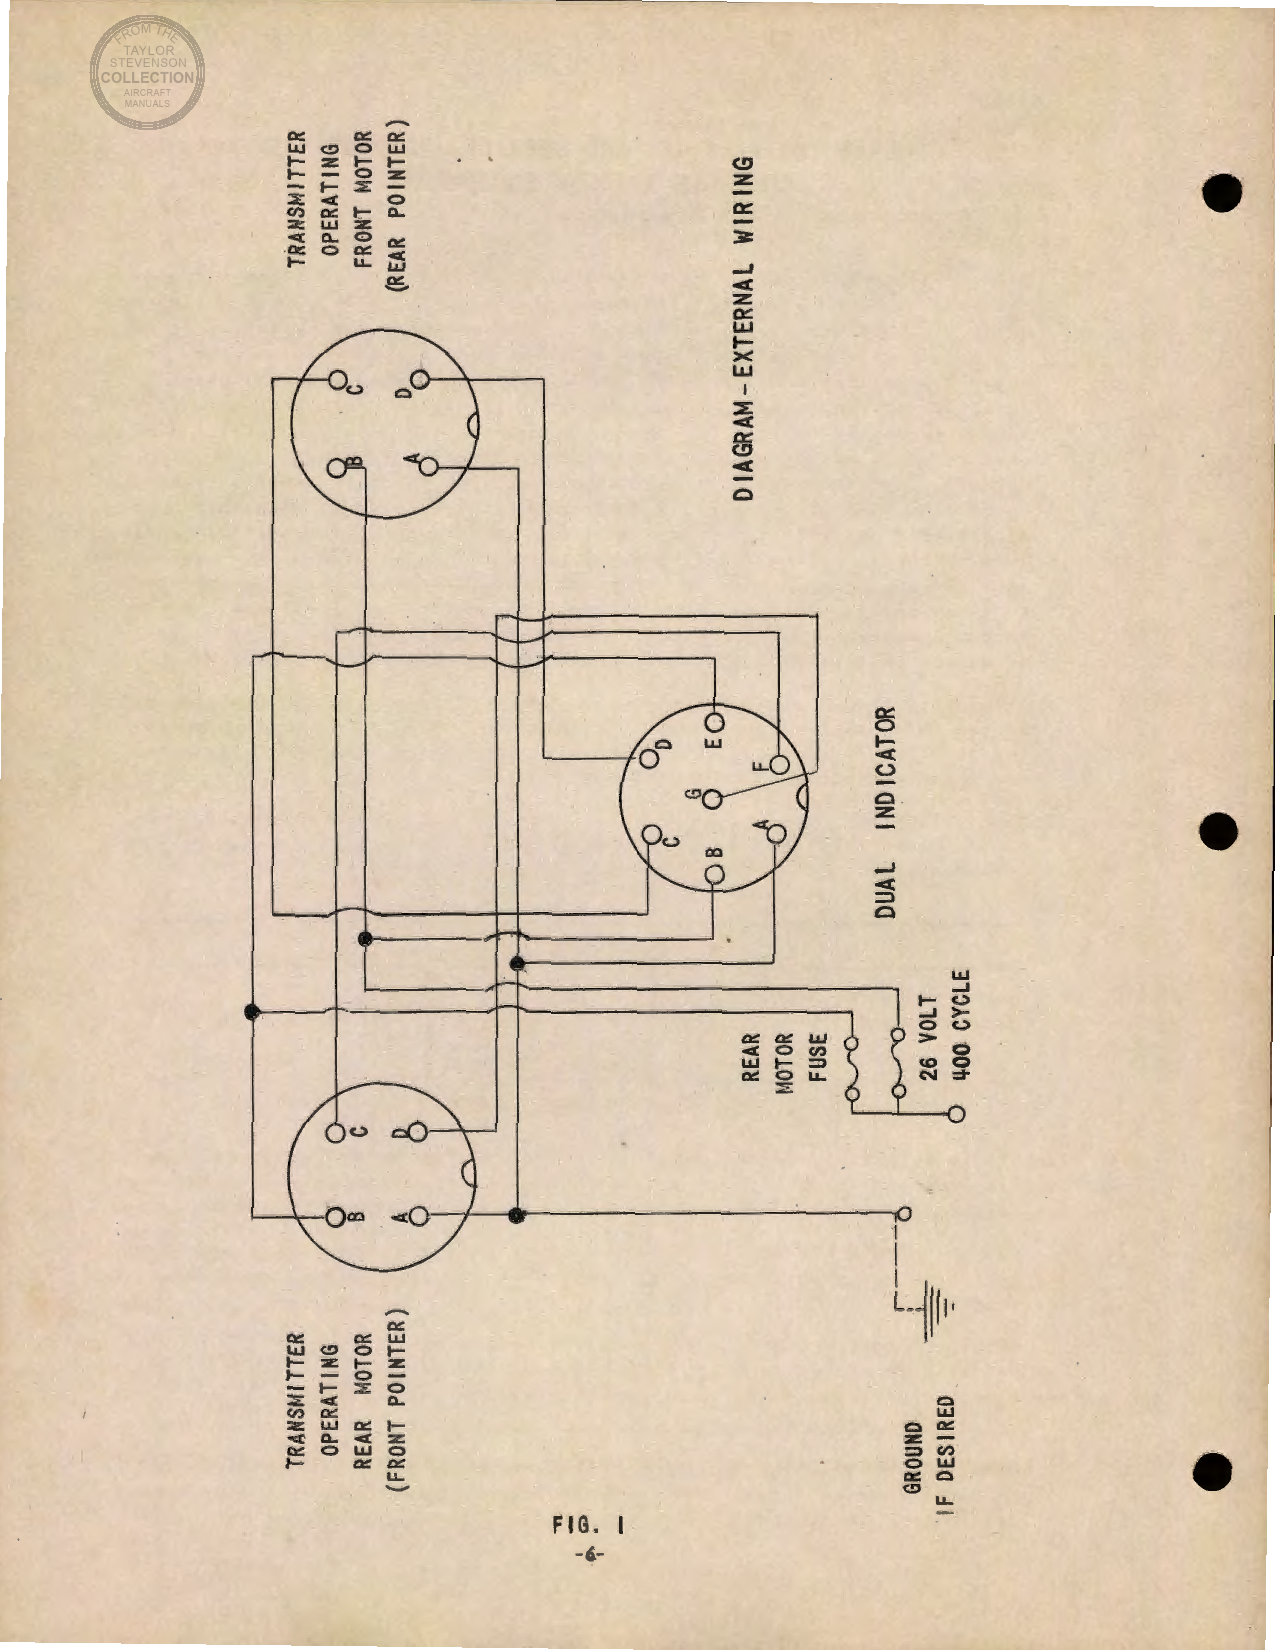 Sample page 6 from AirCorps Library document: Engine and Aeronautical Instruments for the B-17